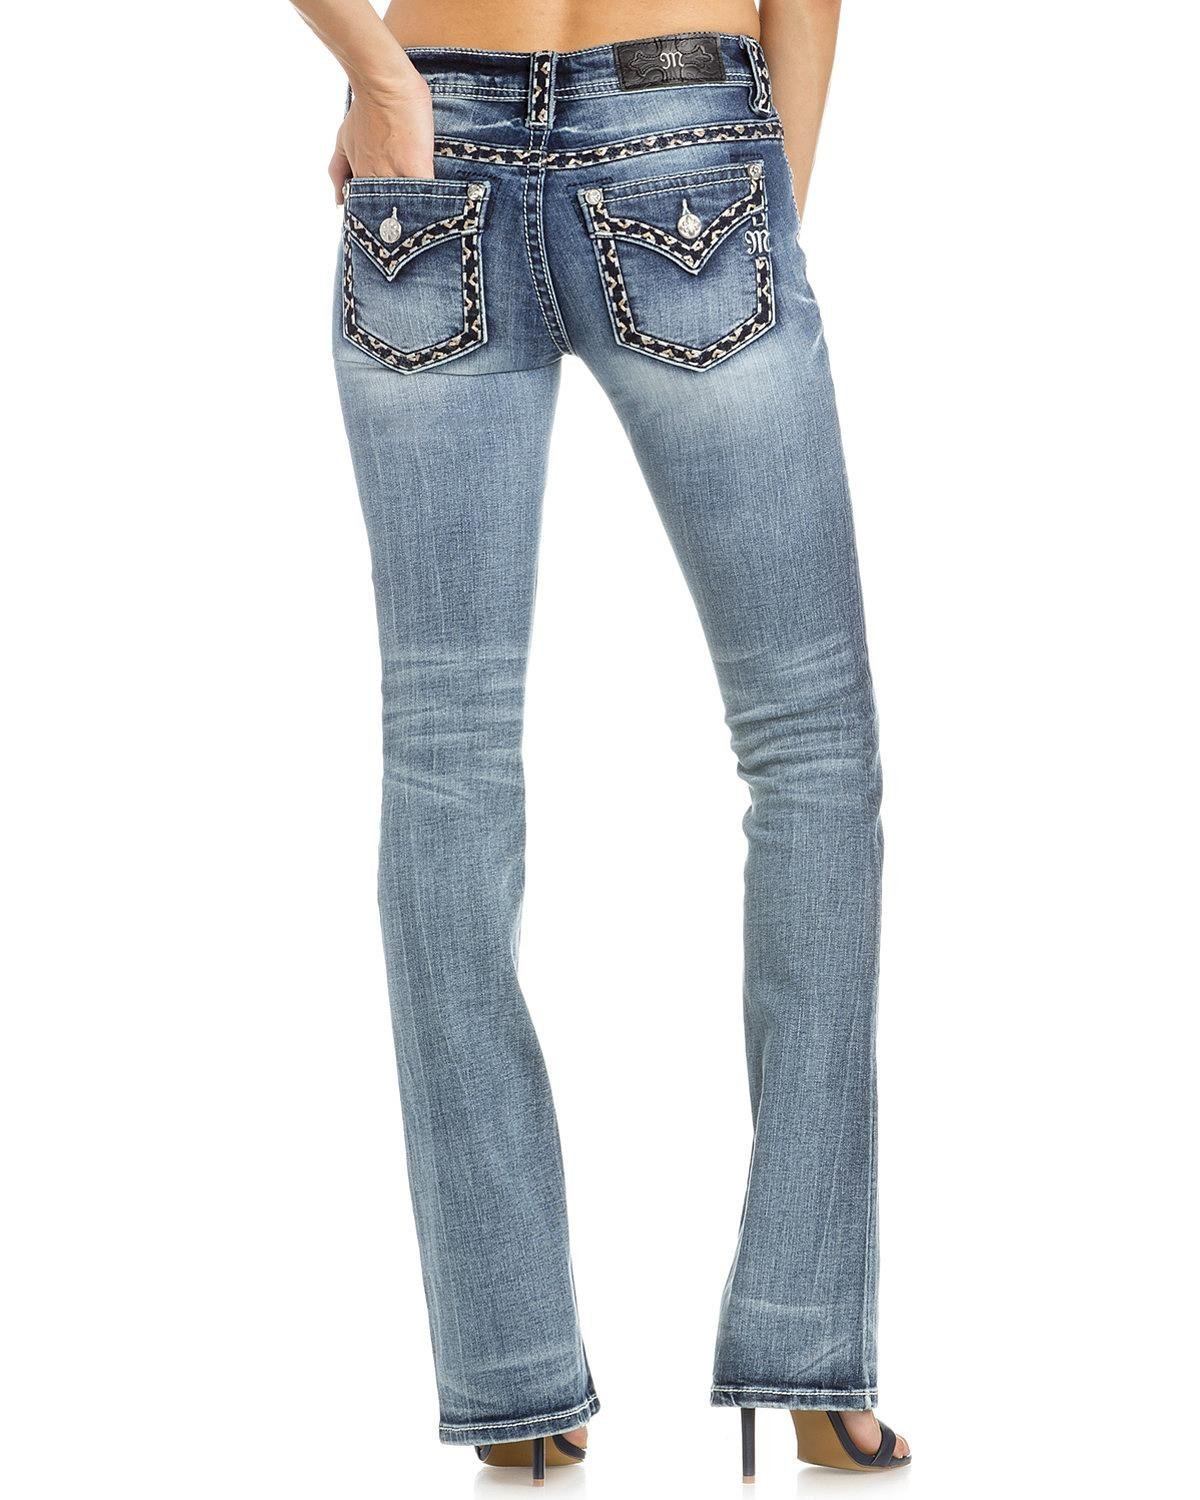 Miss Me Women's Heavy Stitched Boot Cut Jeans Indigo 29